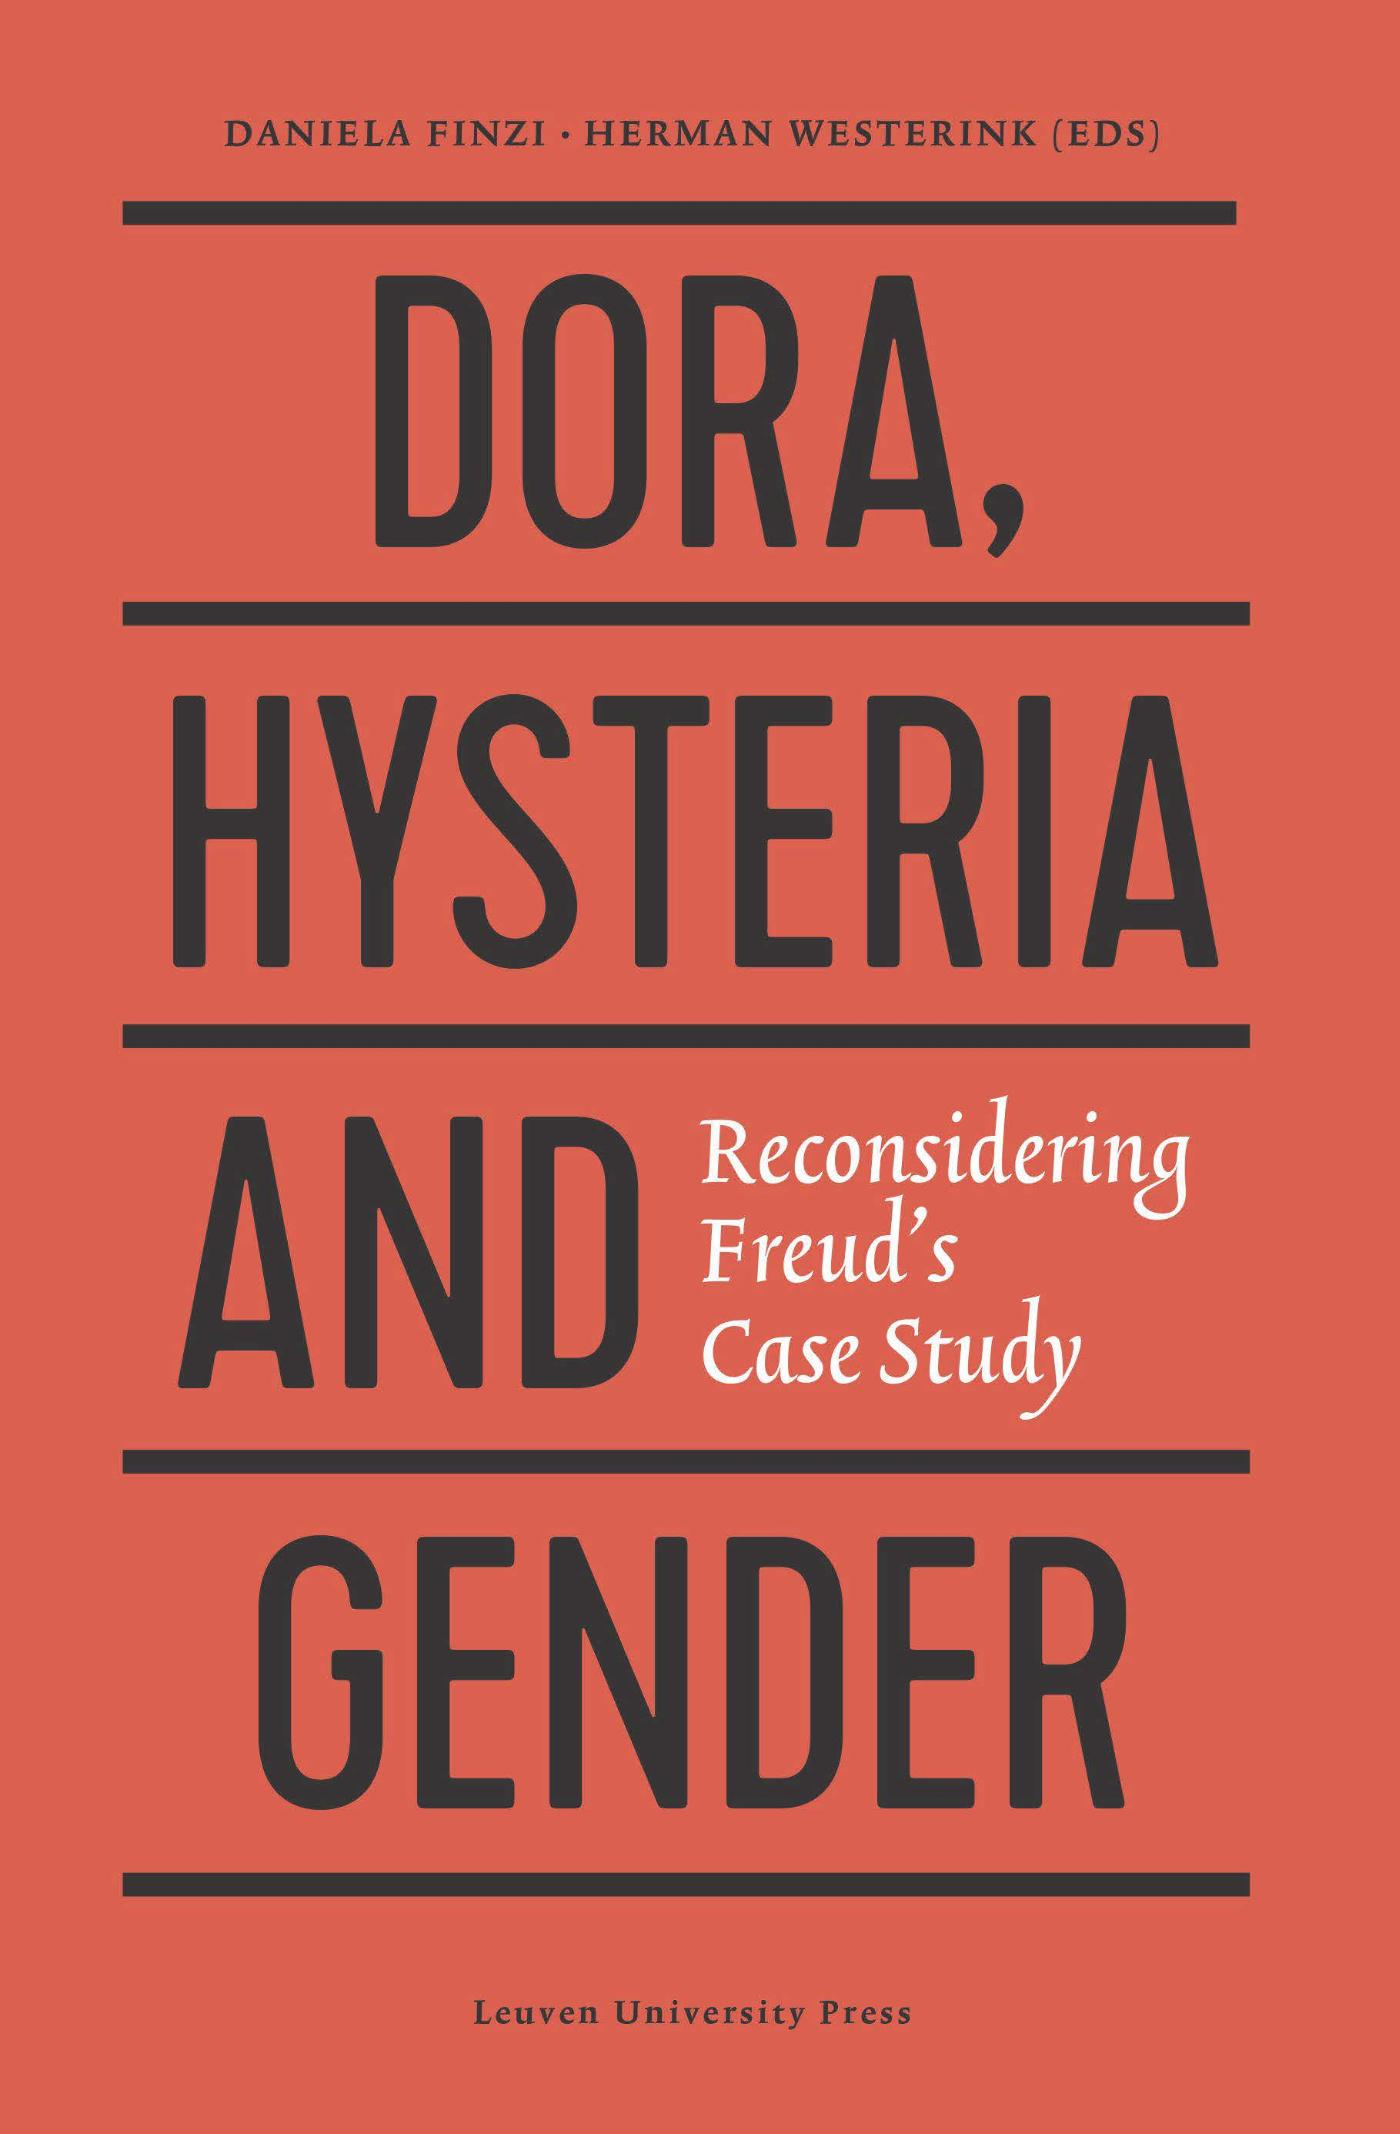 Cover Dora, Hysteria and Gender